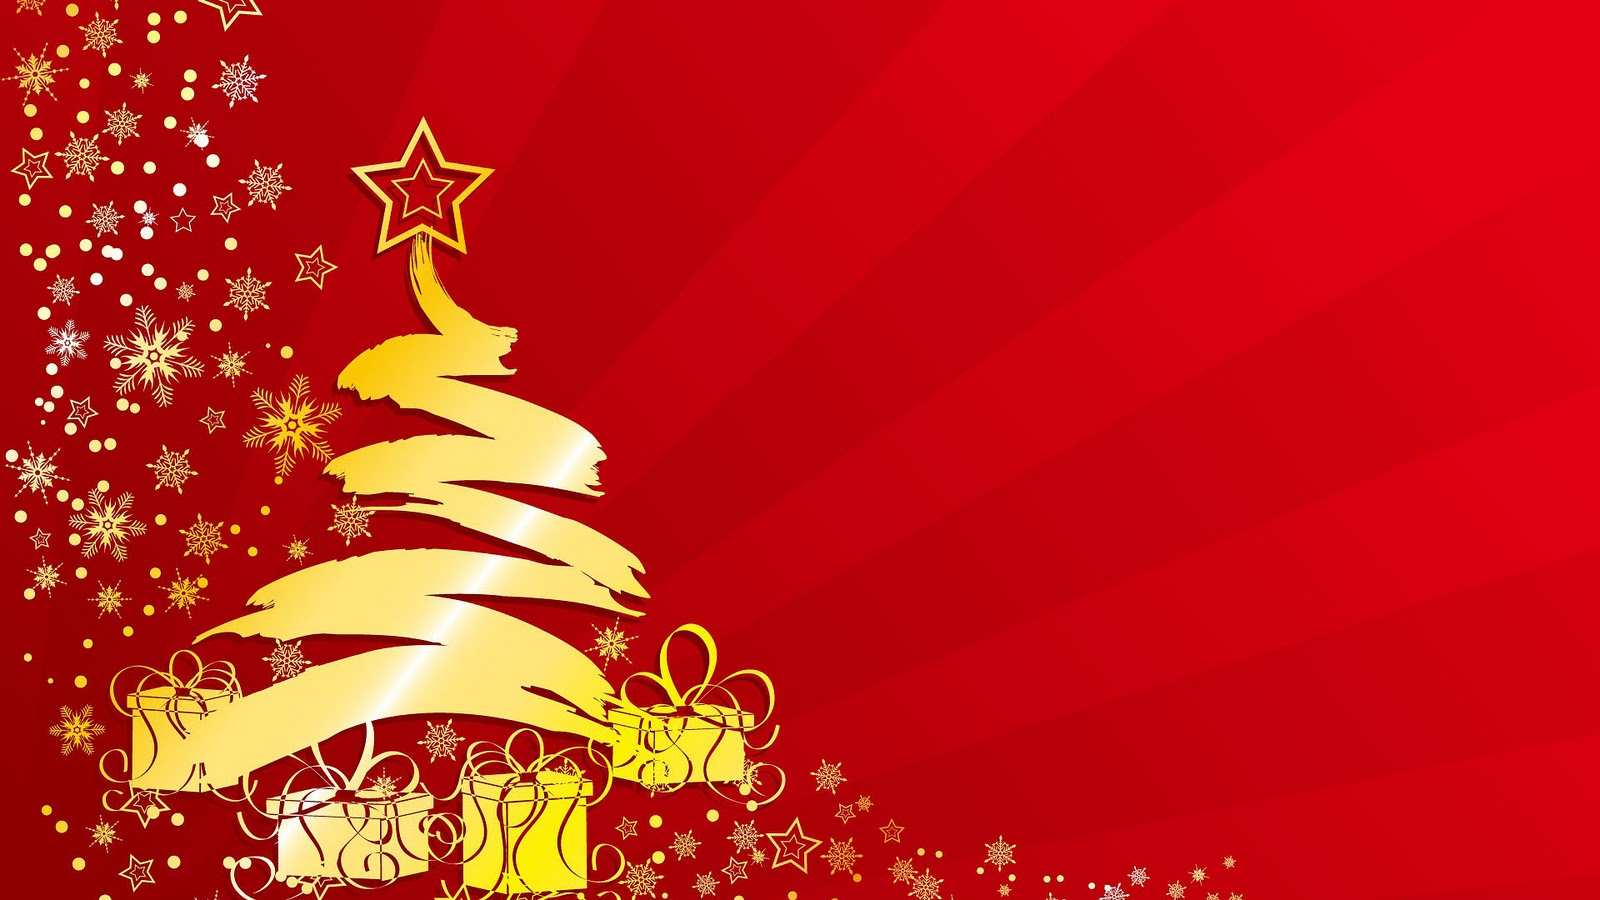 Christmas Background Images | Wallpapers9